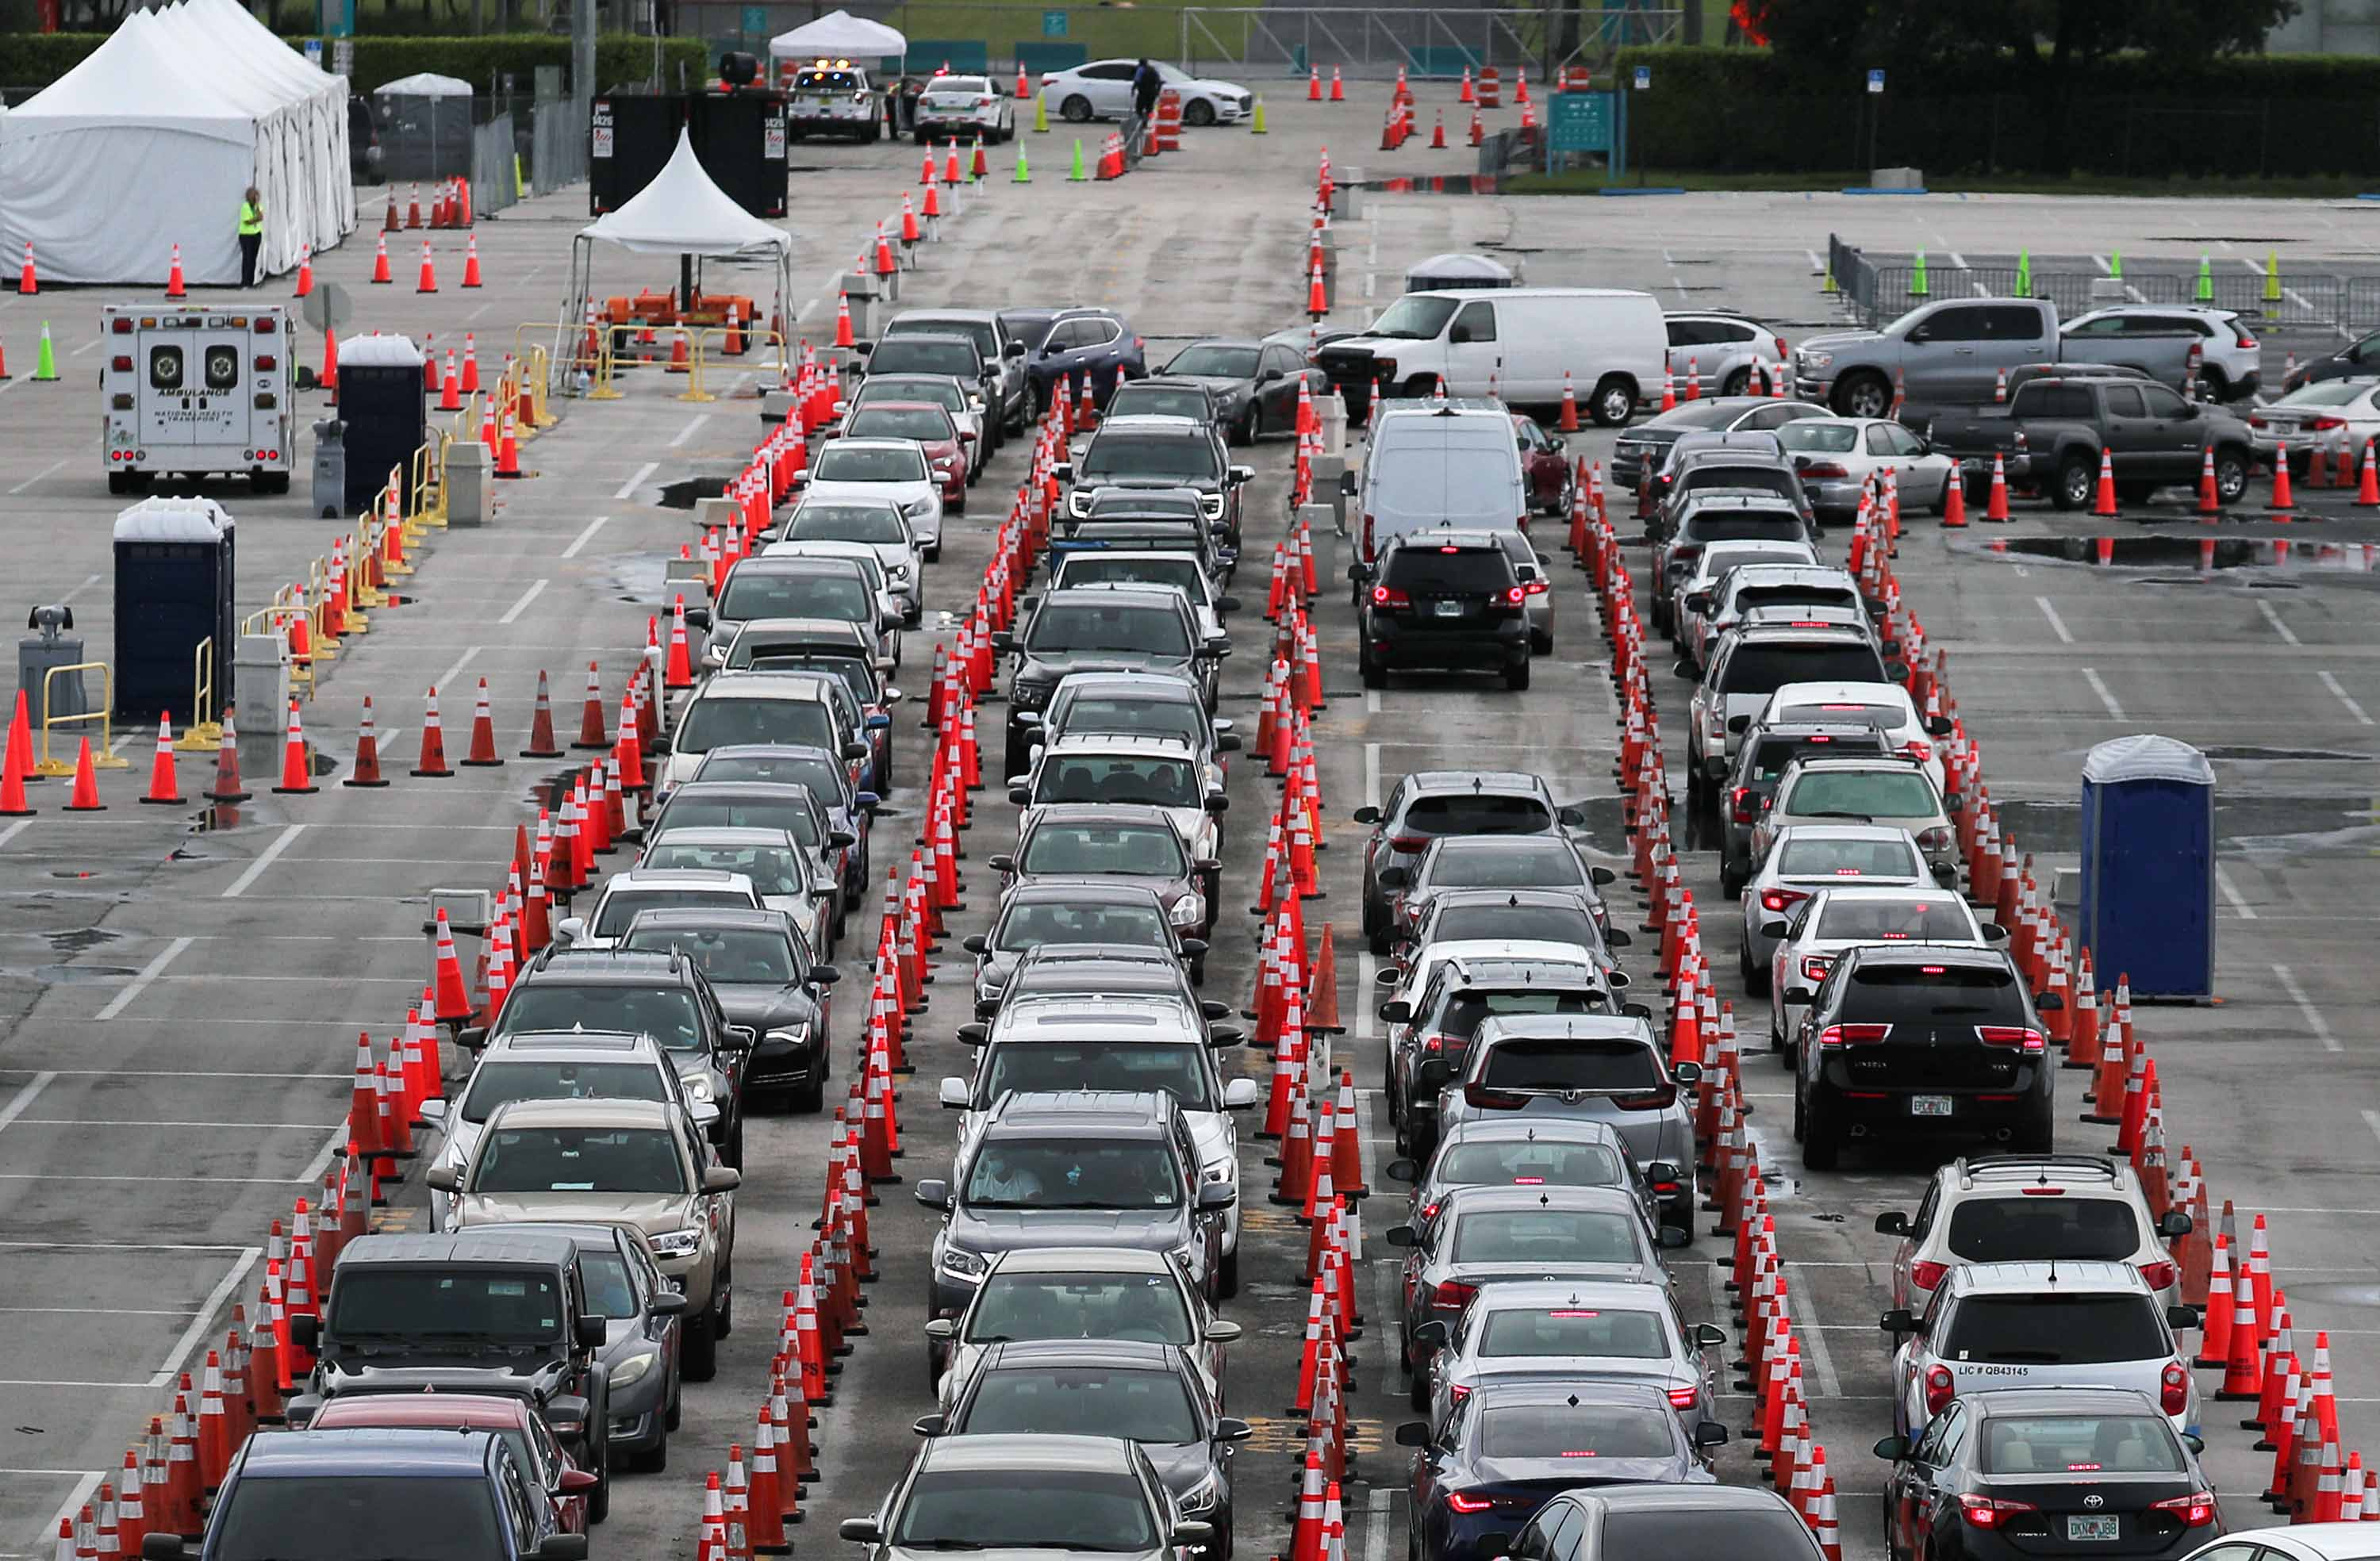 Cars line up as drivers wait to be tested for Covid-19 at the Hard Rock Stadium parking lot in Miami Gardens, Florida, on July 6.